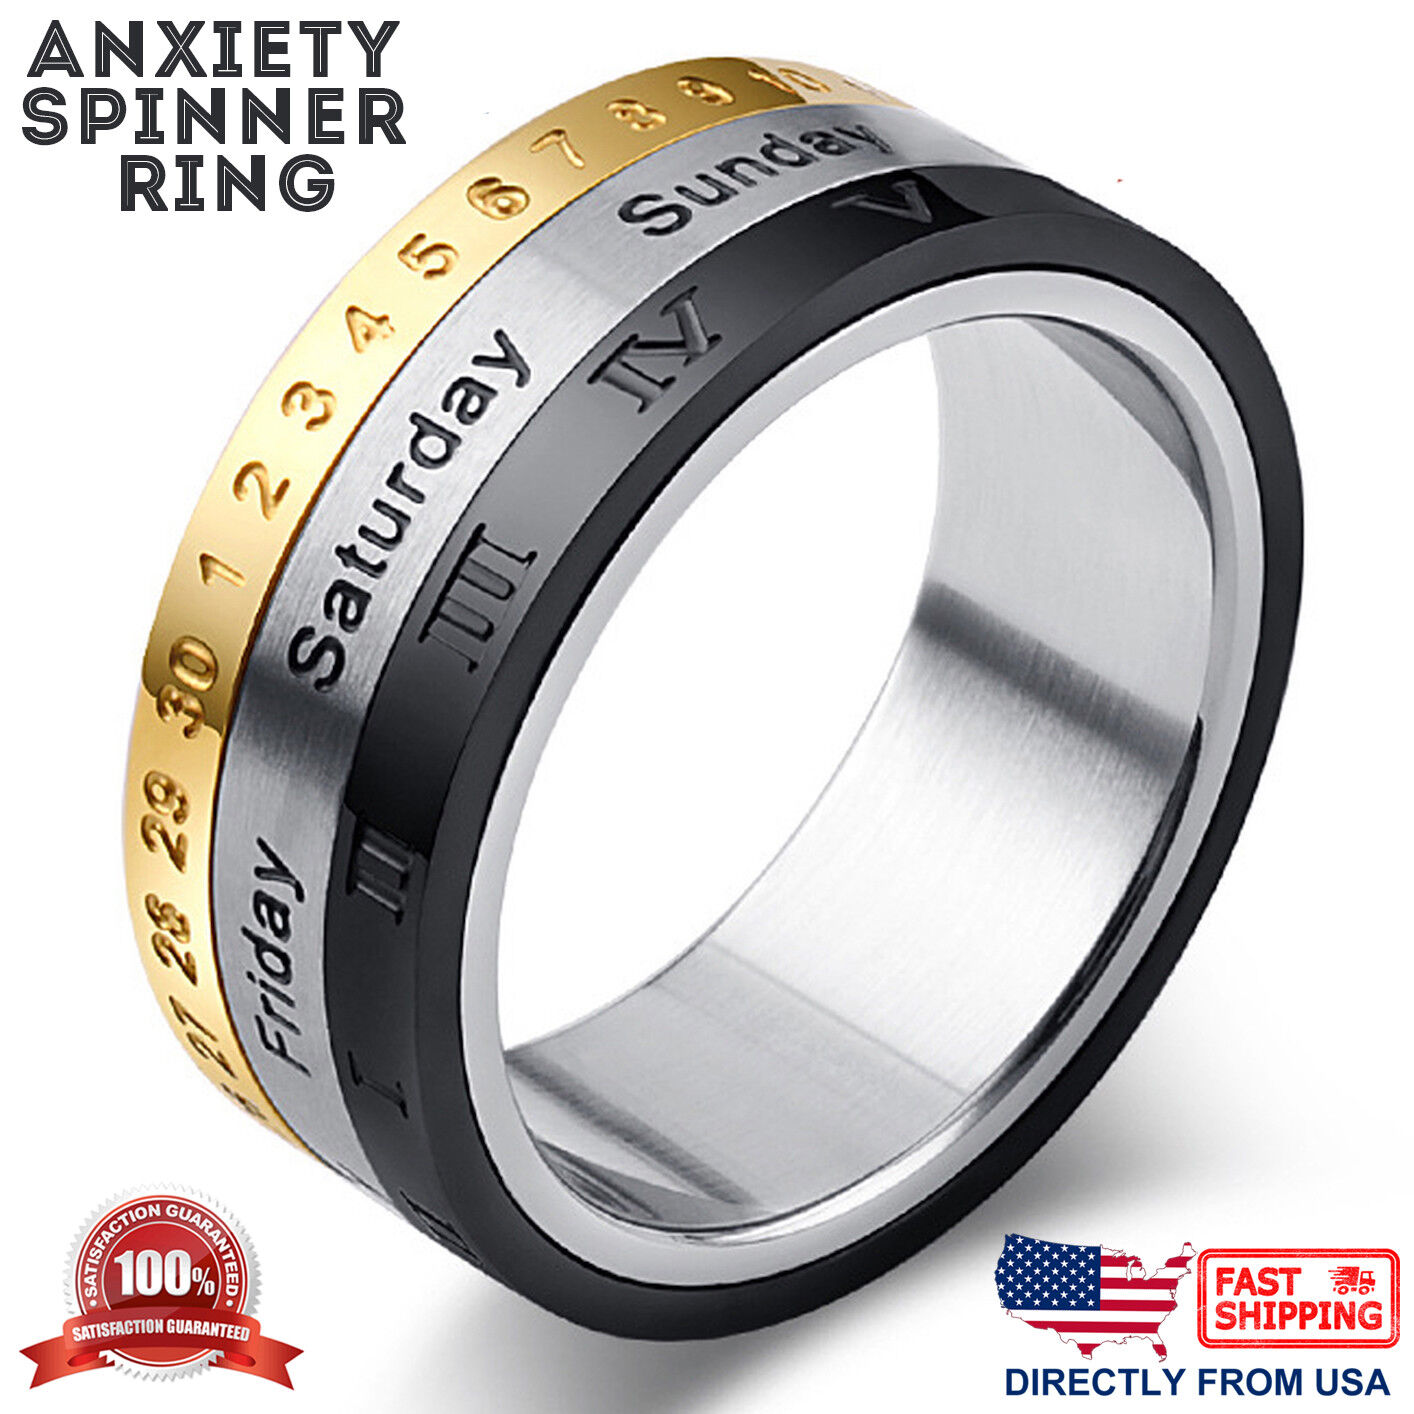 Men's Stainless Steel Dates, Roman Numerals, and Numbers Anxiety Spinner Ring Jewelry & Watches